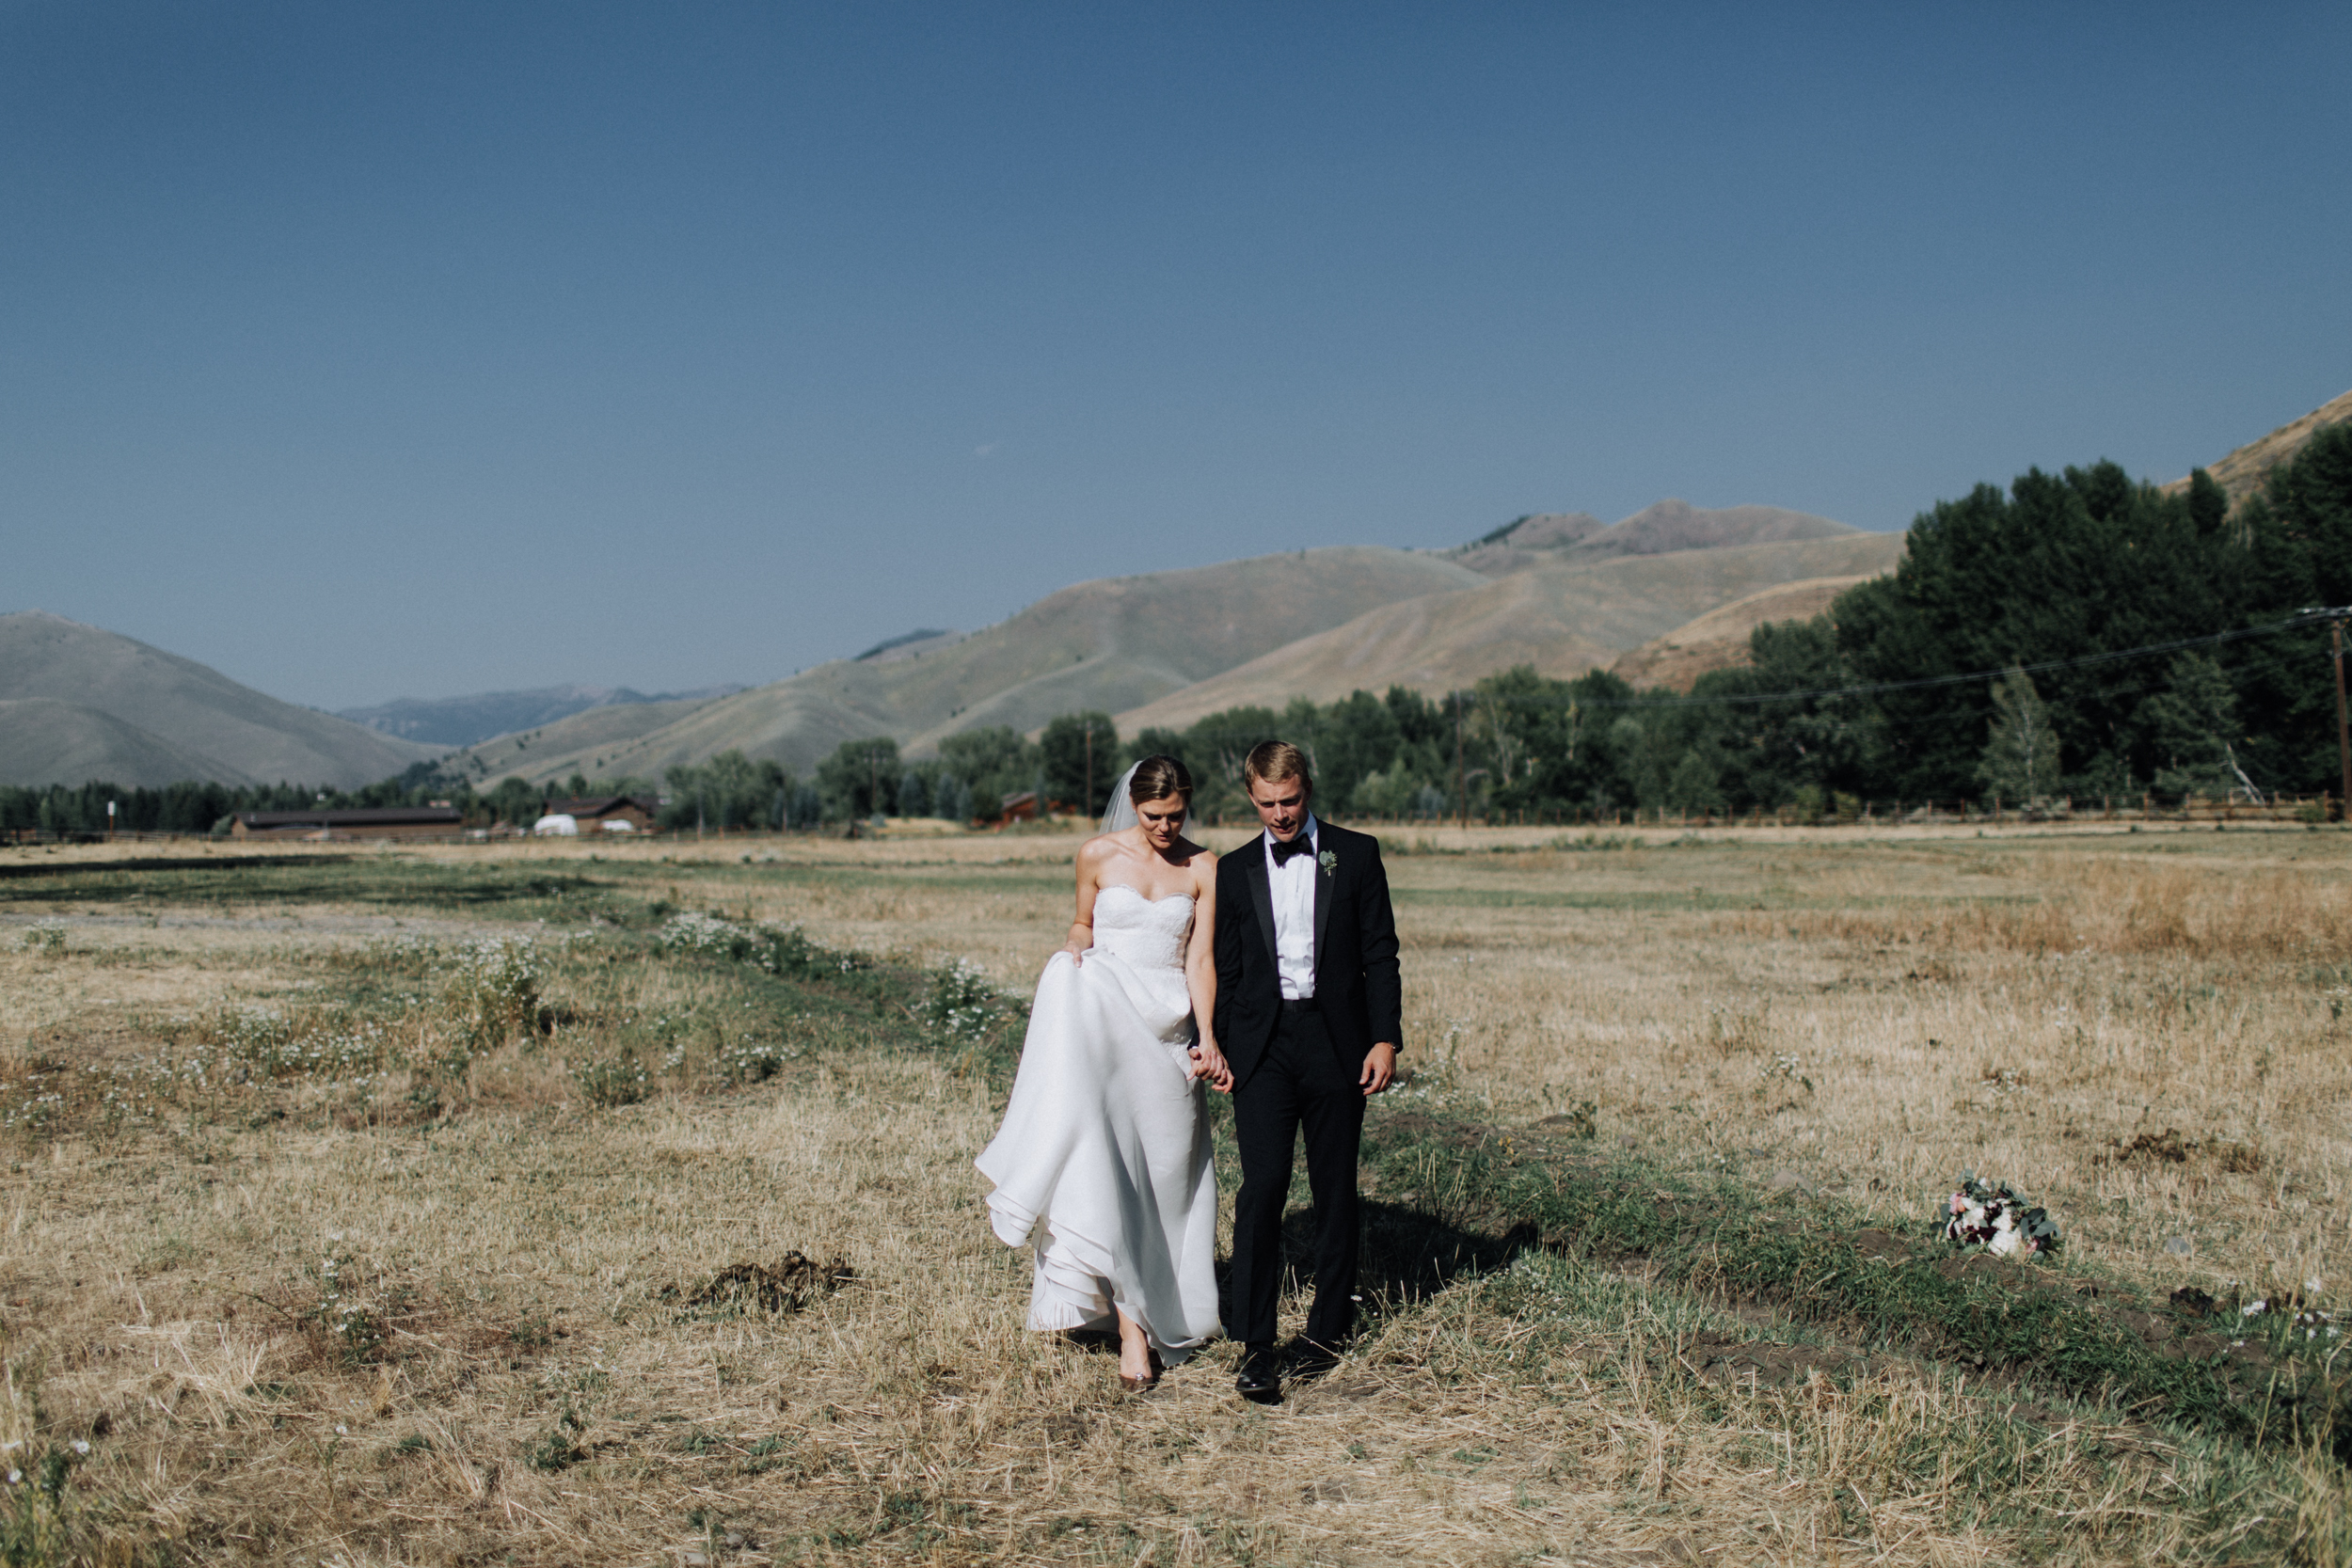 mad_Jon_Sun_valley_idaho_wedding-58.jpg